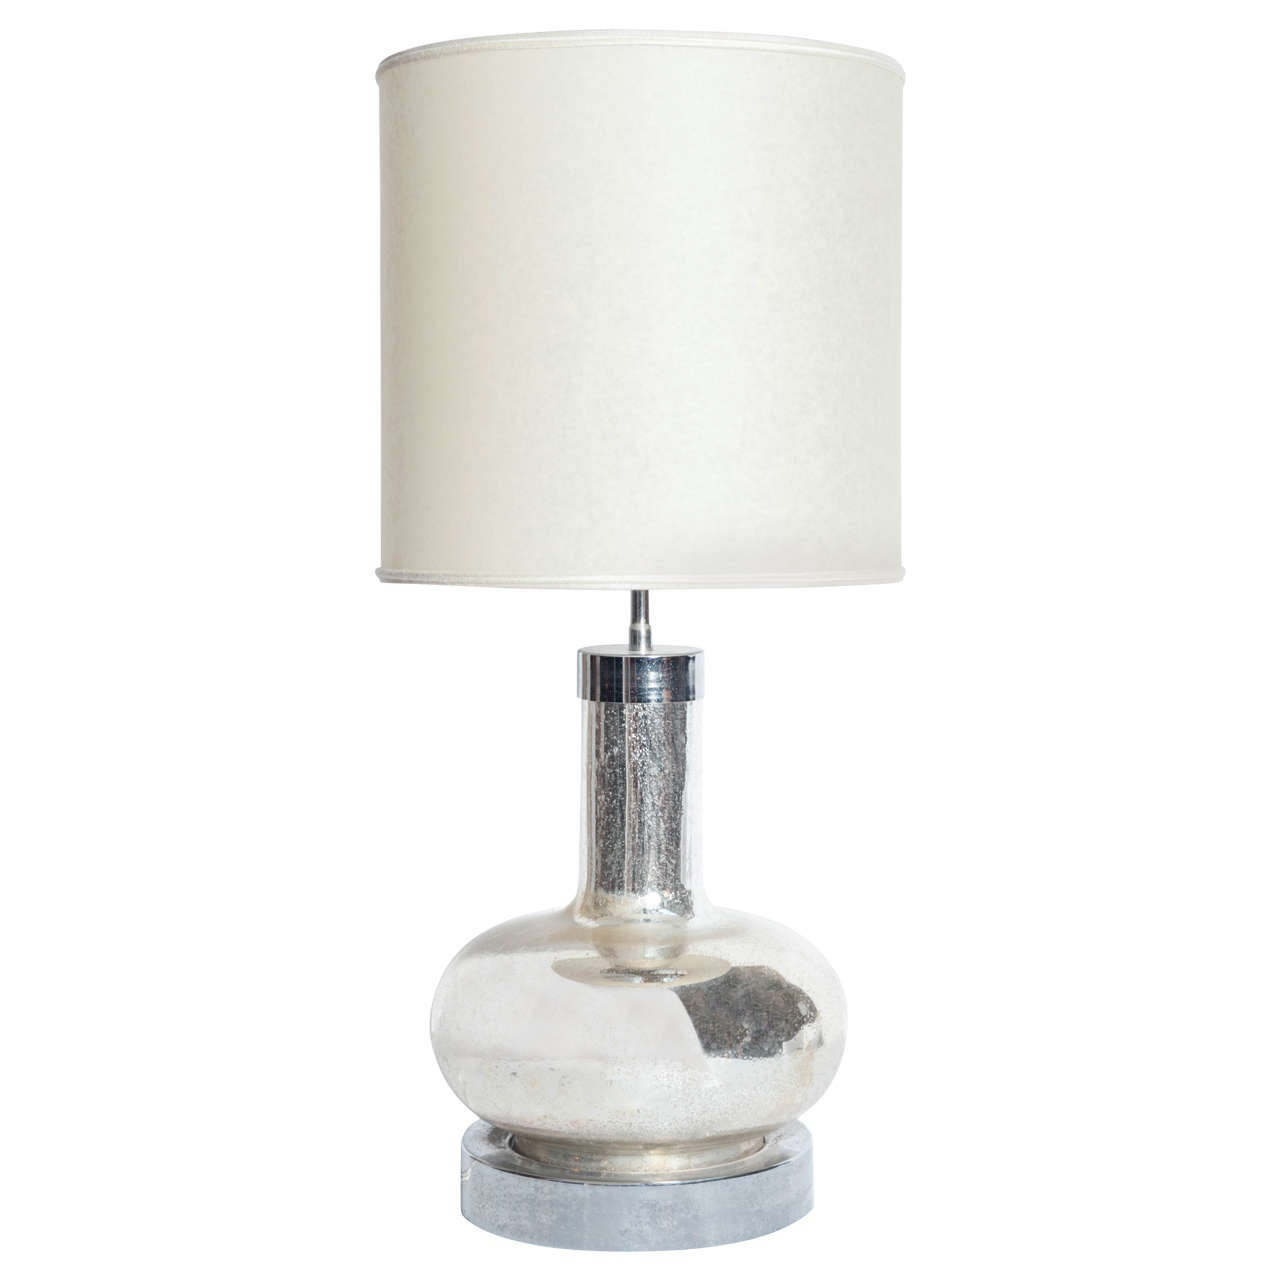 Mercury Glass Lamp For Sale At 1stdibs